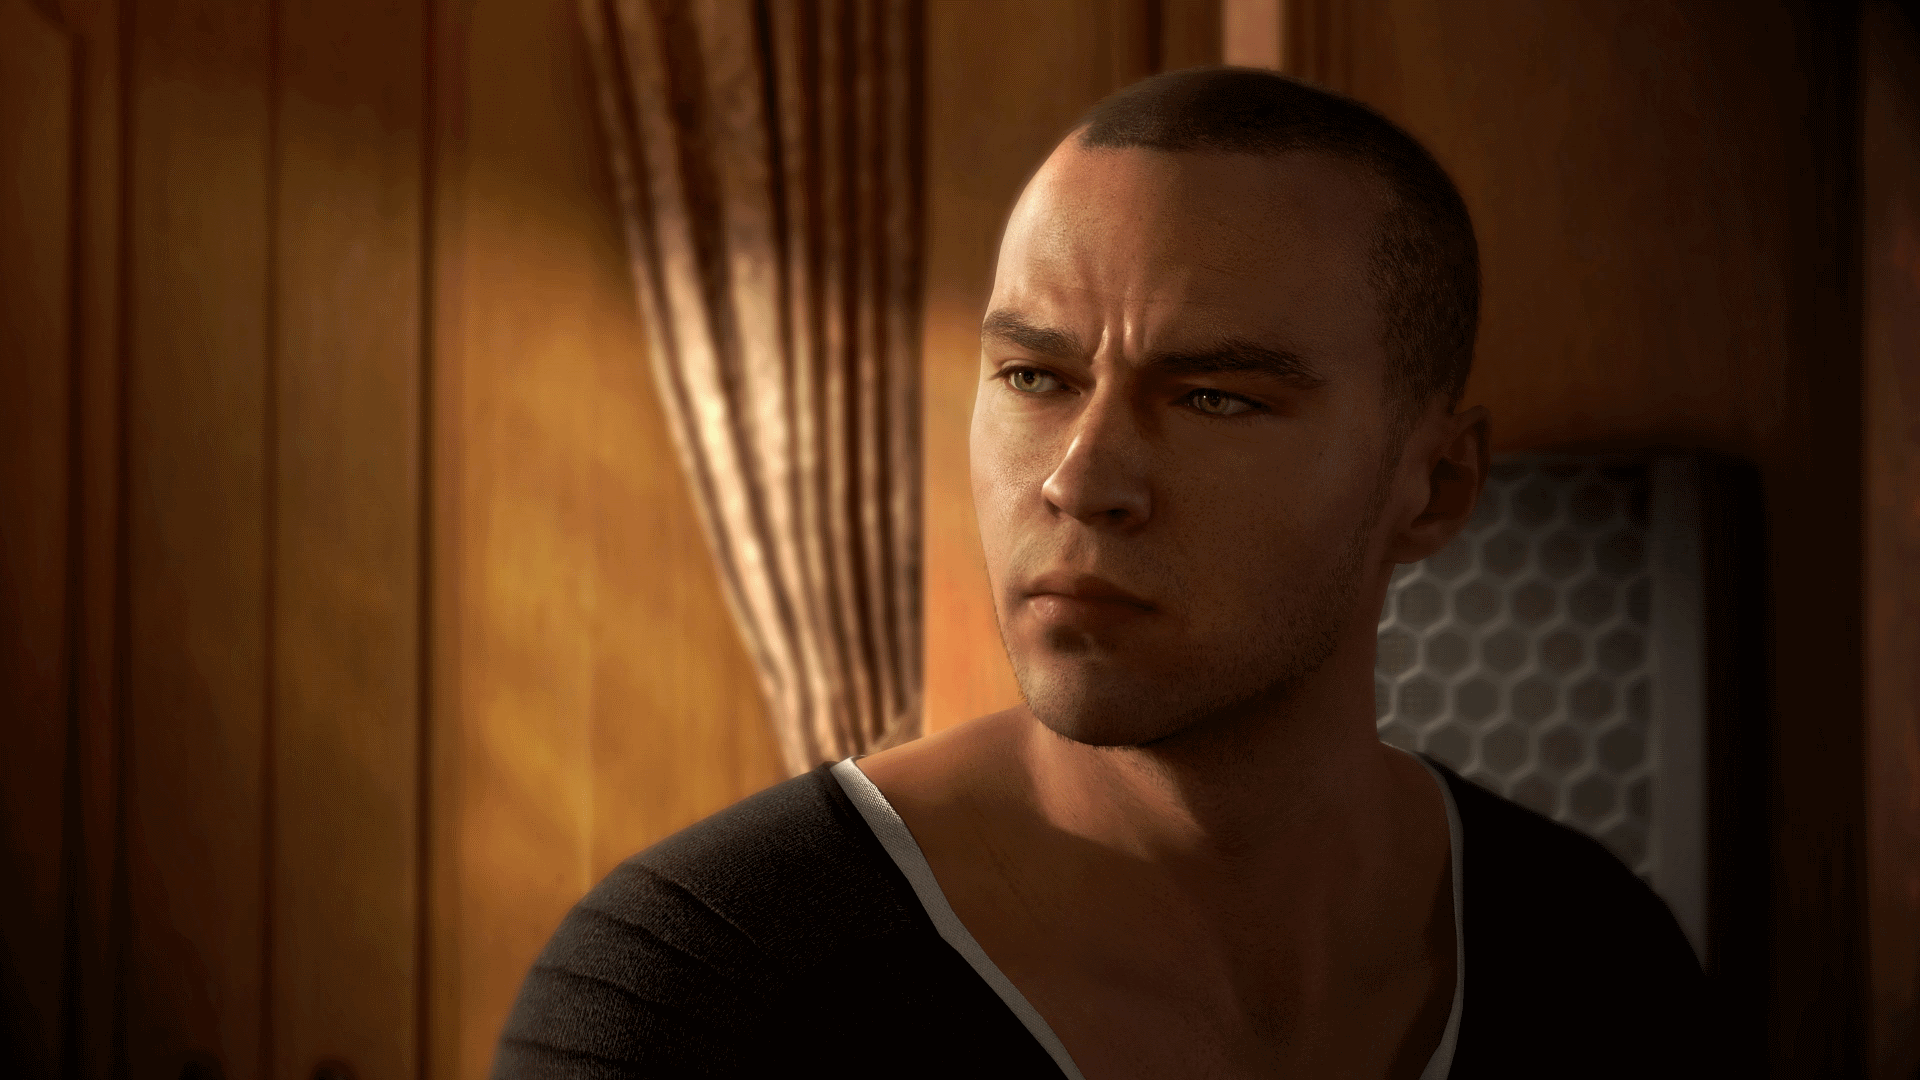 © Detroit: Become Human / Quantic Dream / Fair Use